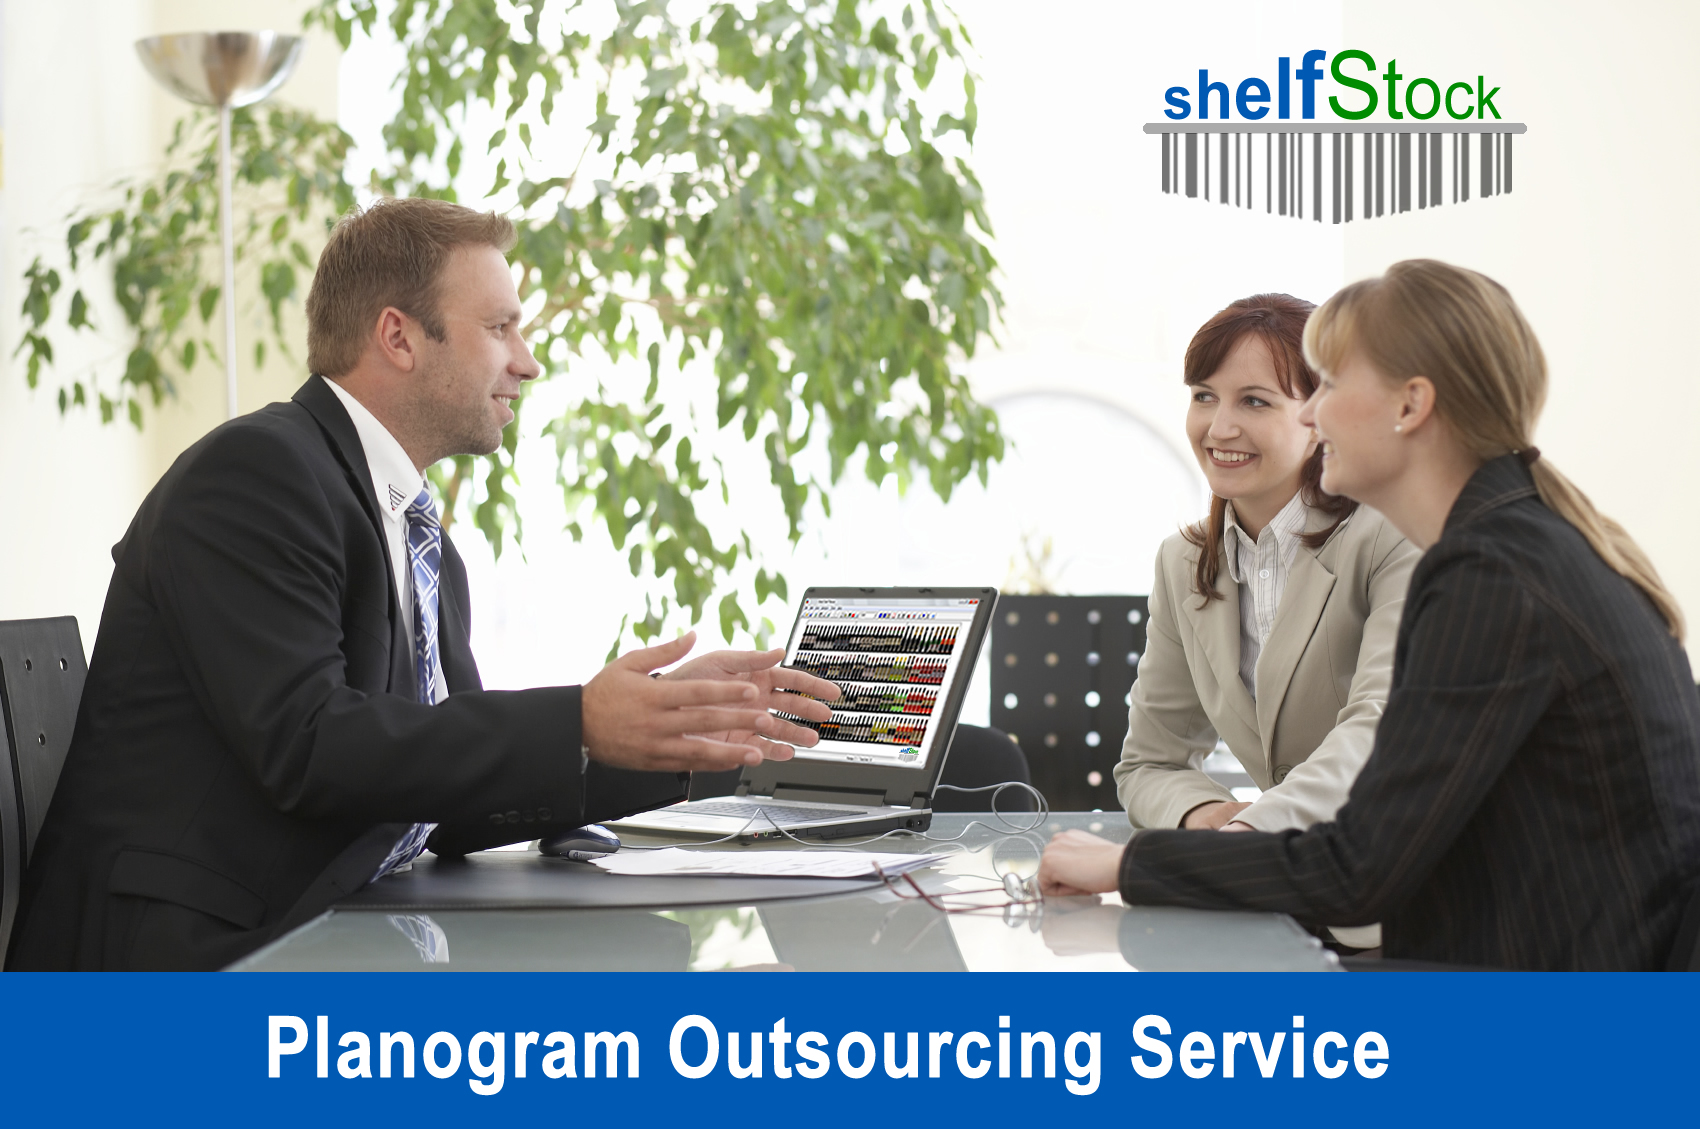 Shelfstock Outsourcing